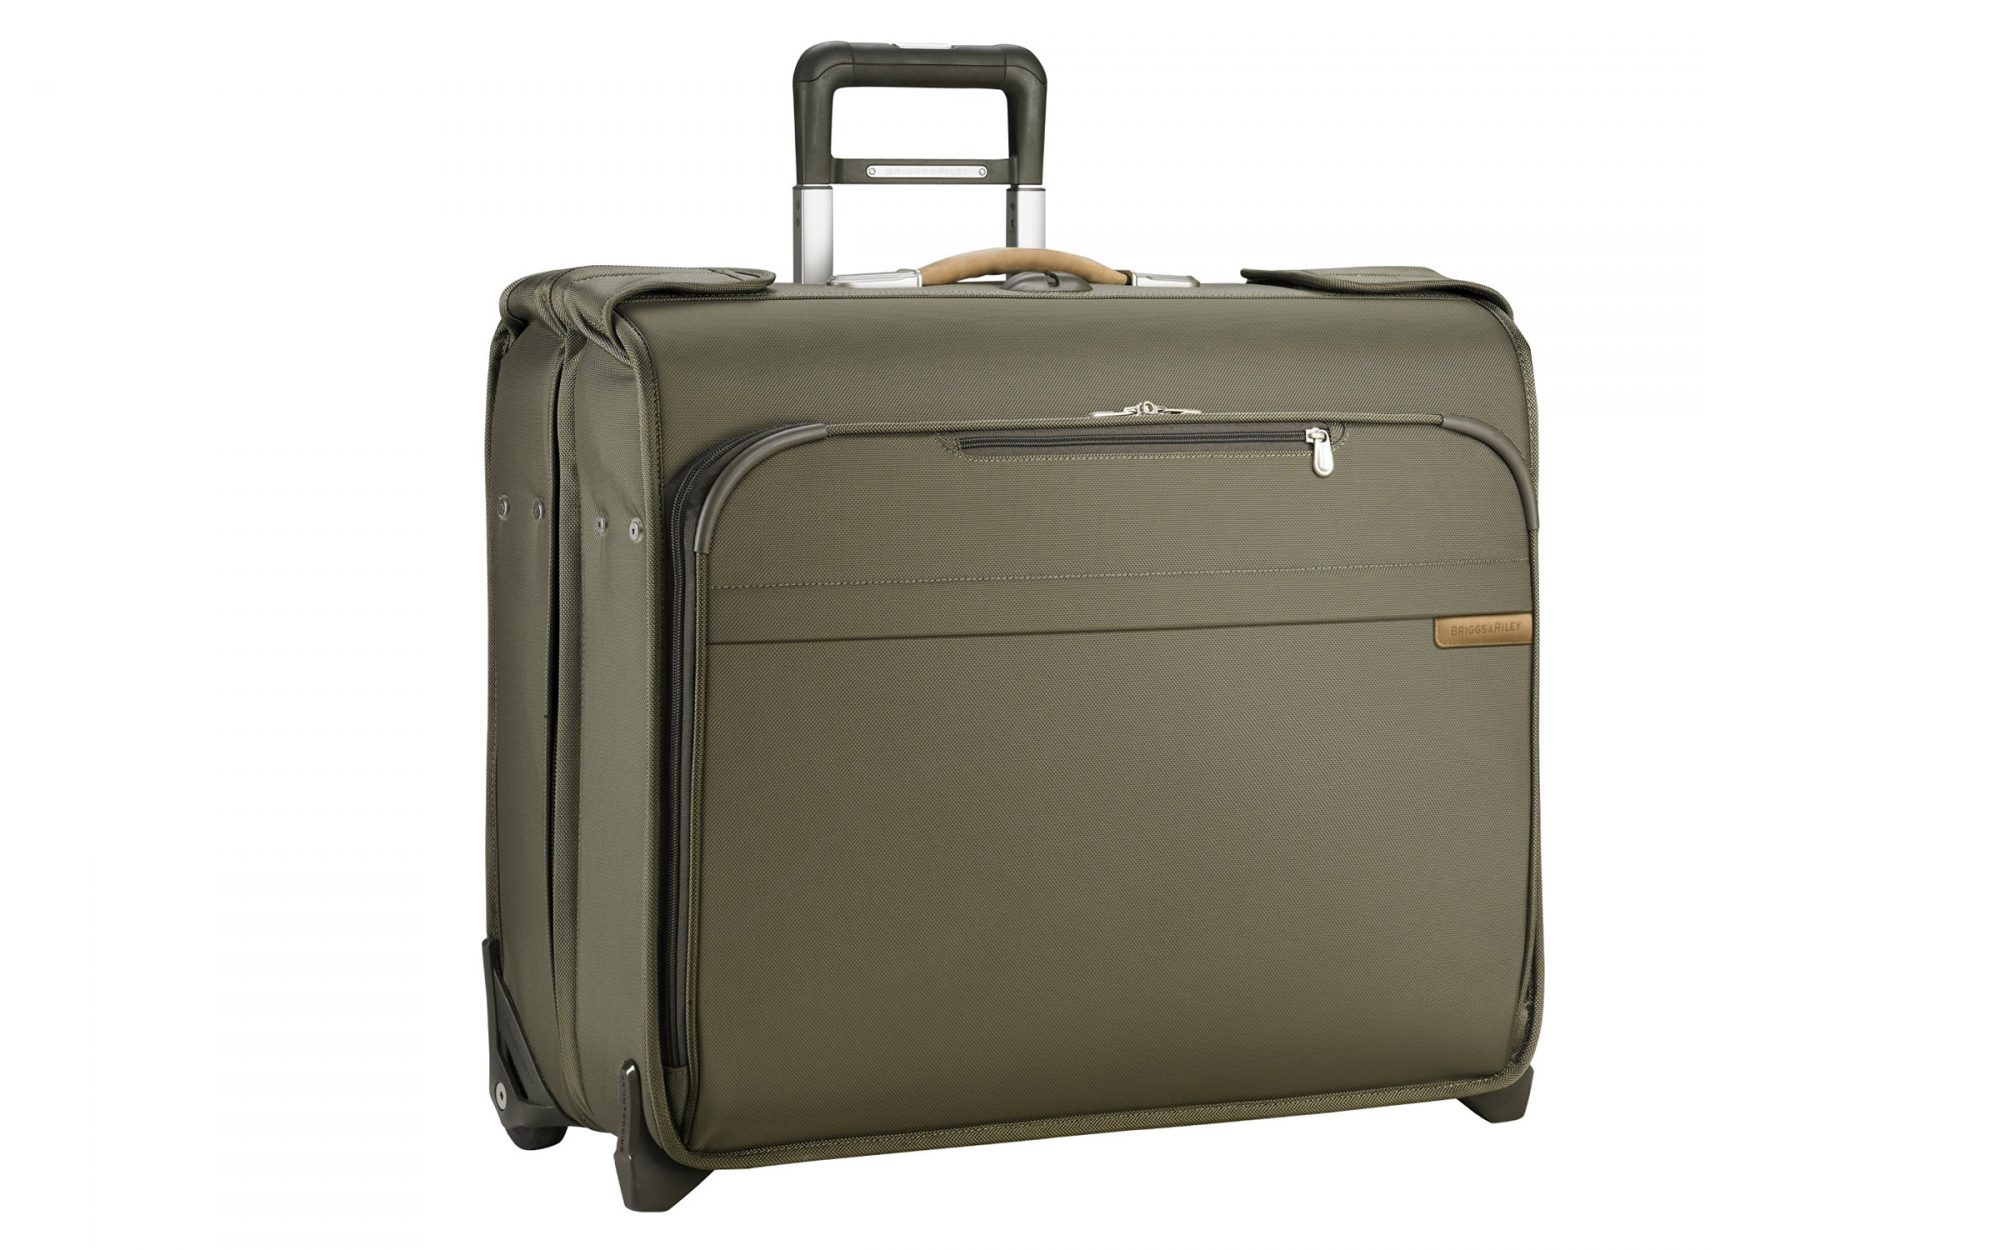 Best Carry-On Luggage for Business Travel: Briggs & Riley wheeled garment bag